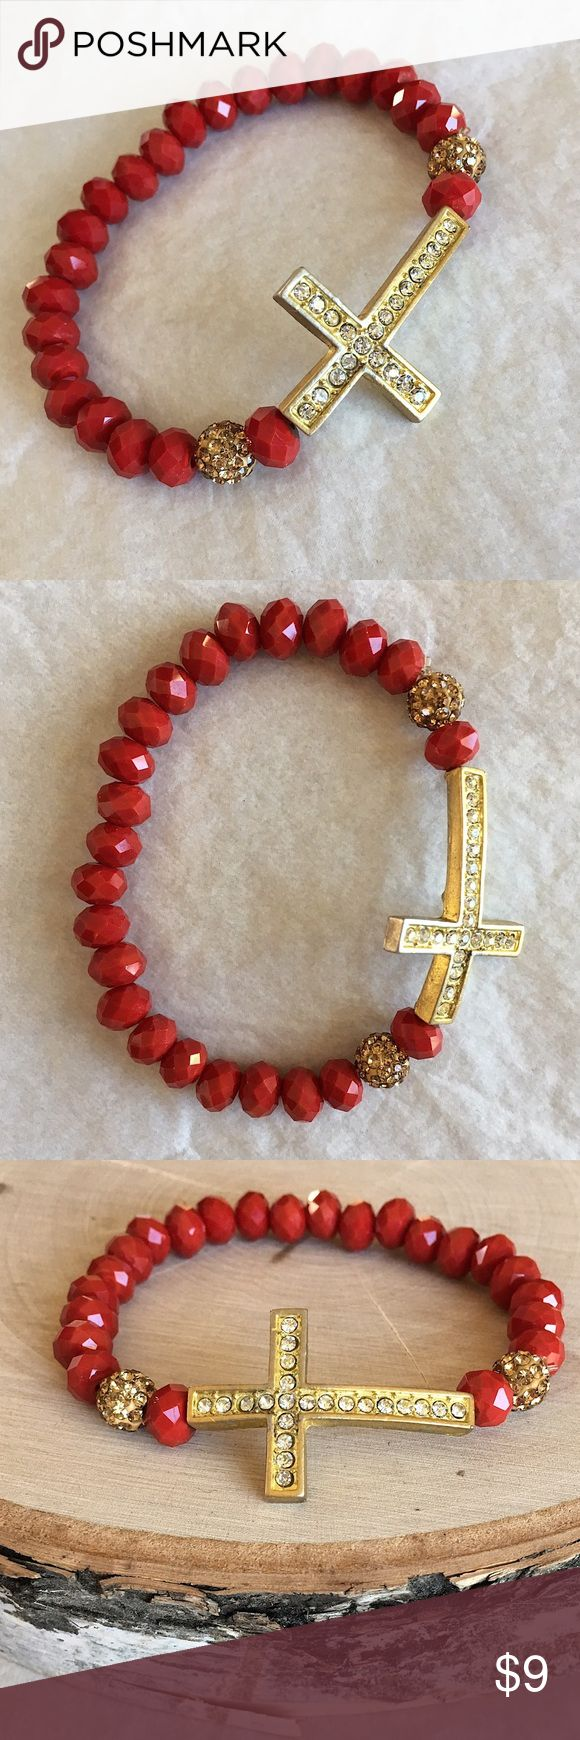 Cross Bracelet How adorable is this red beaded bracelet with a gold and ring stone cross accent!? Jewelry Bracelets